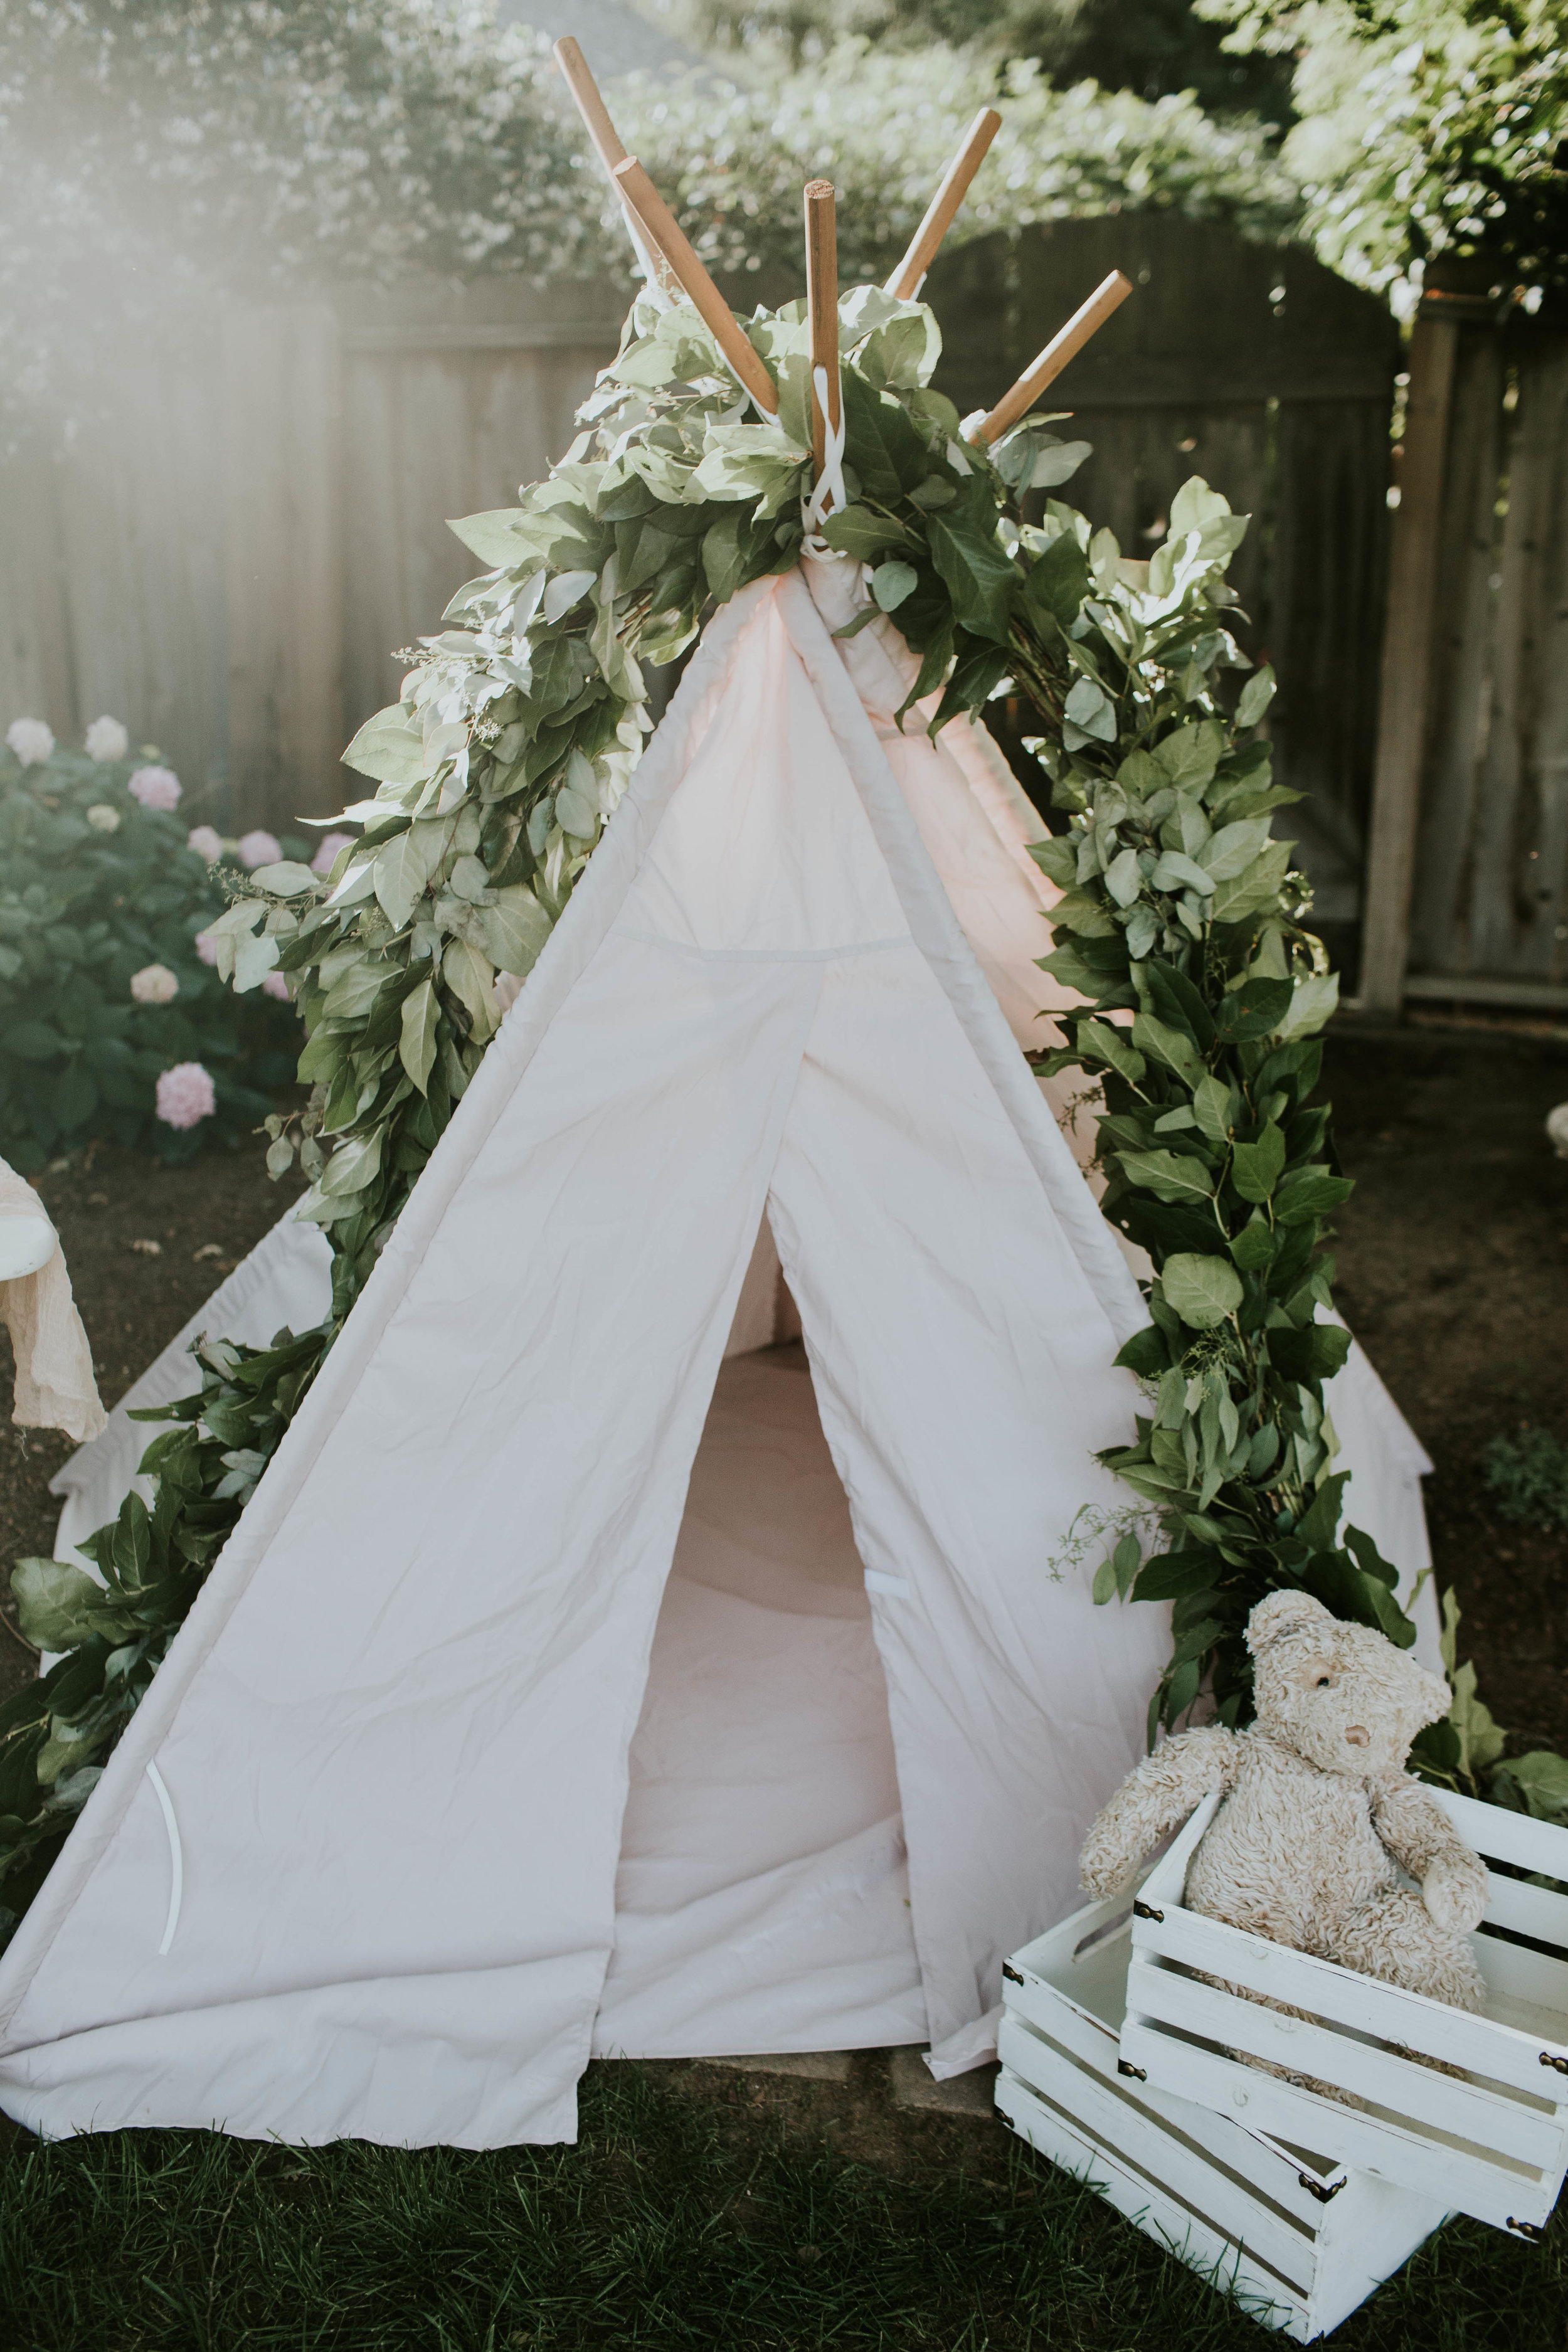   Greenery Garland; Kathryn of KB Flowers   Teepee: My friend Jessie   Photo: Amie Soares Photography   Design: Ribbon & Leaf Events  